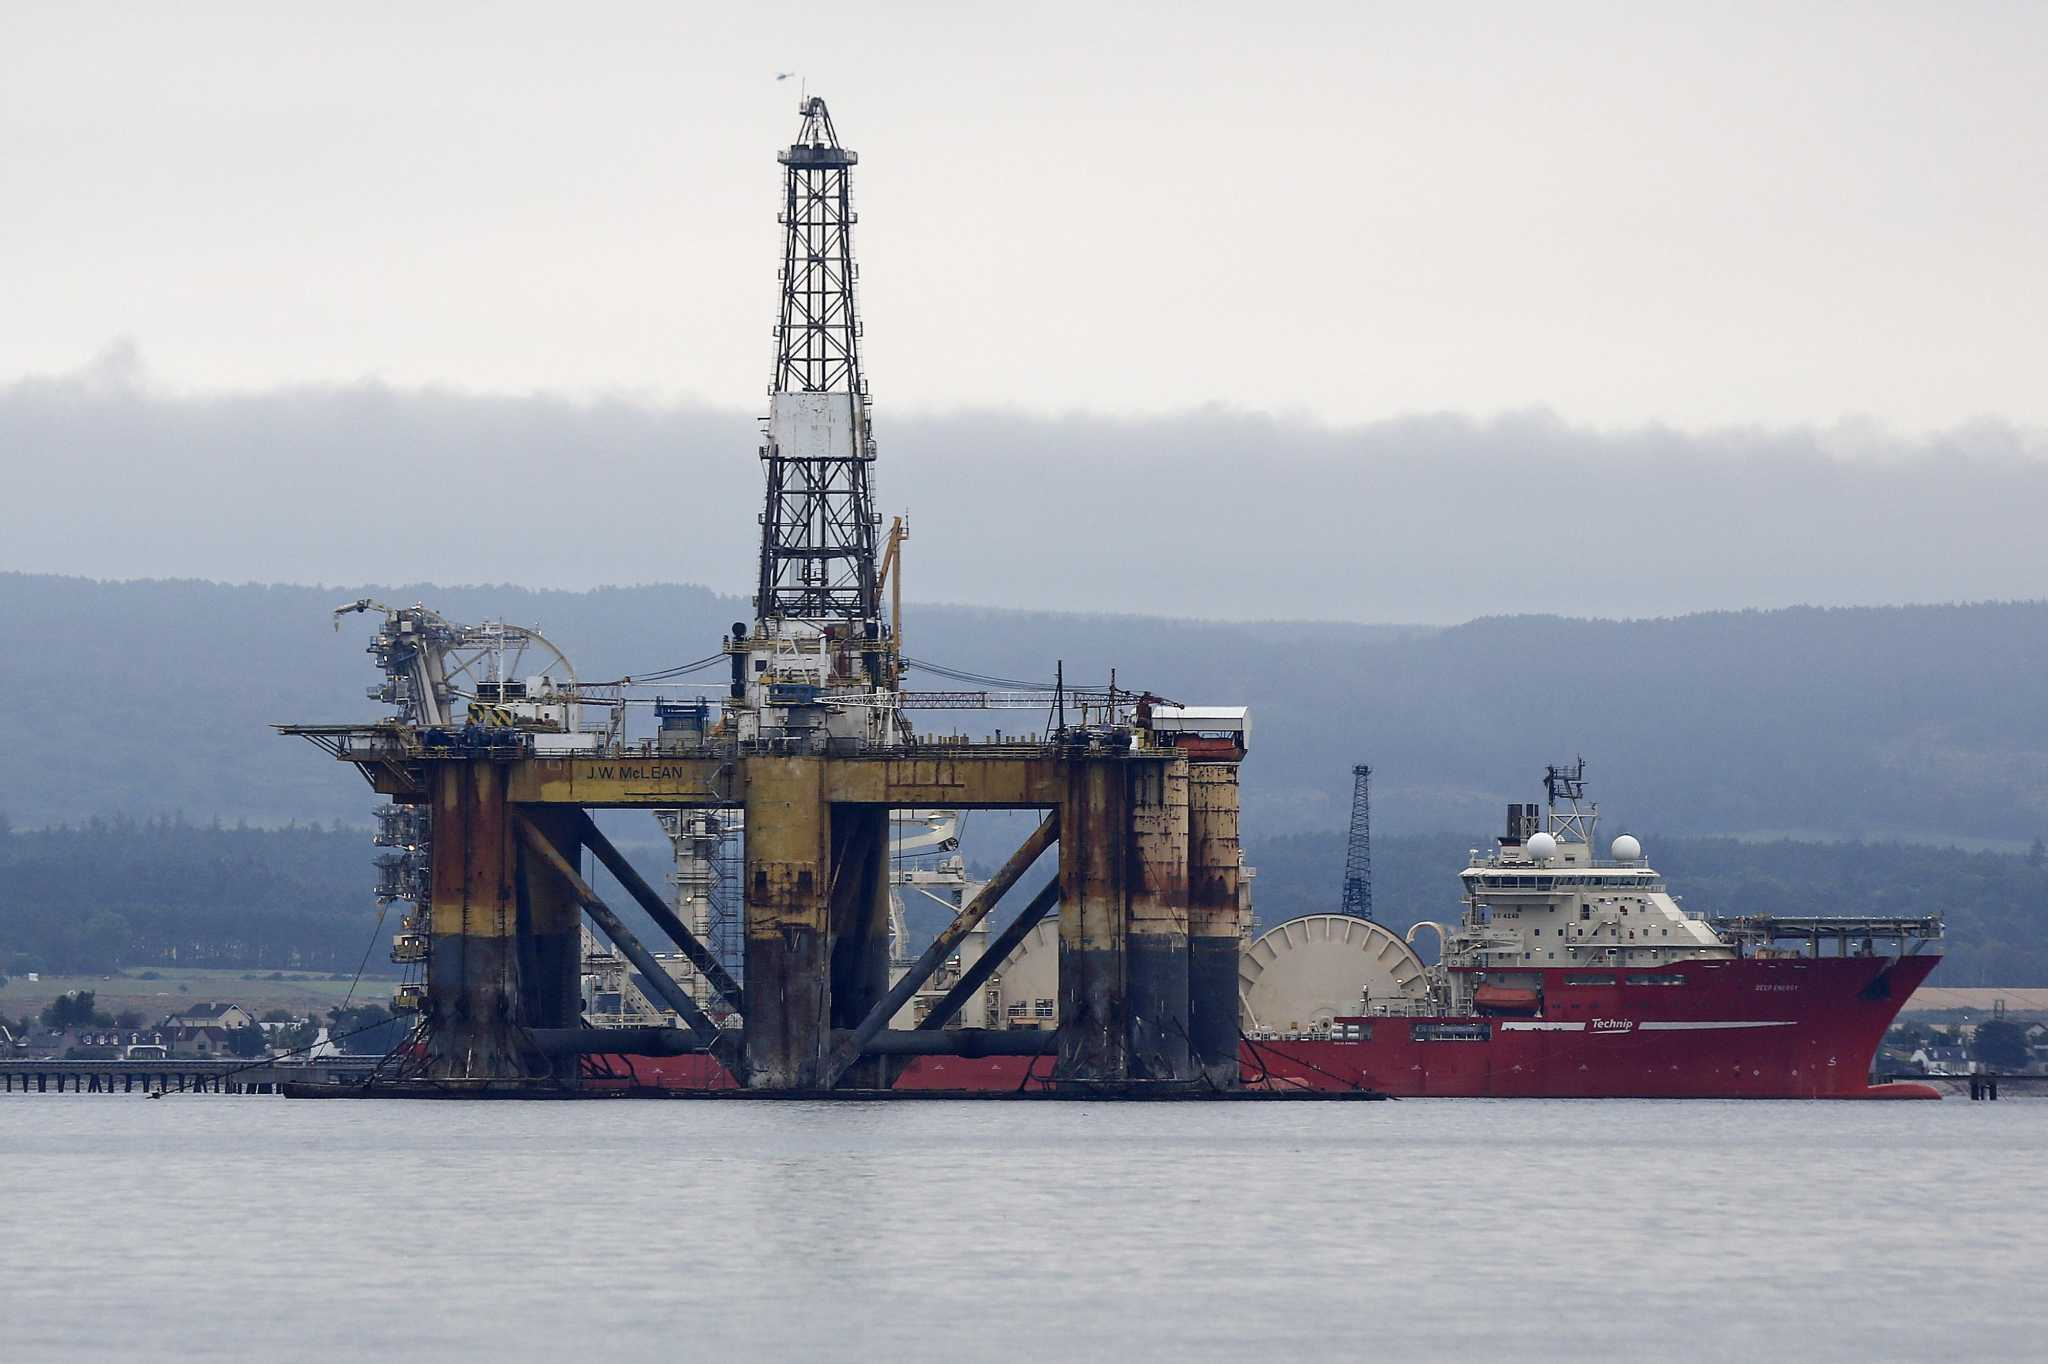 Global energy workforce shifting from onshore shale to offshore